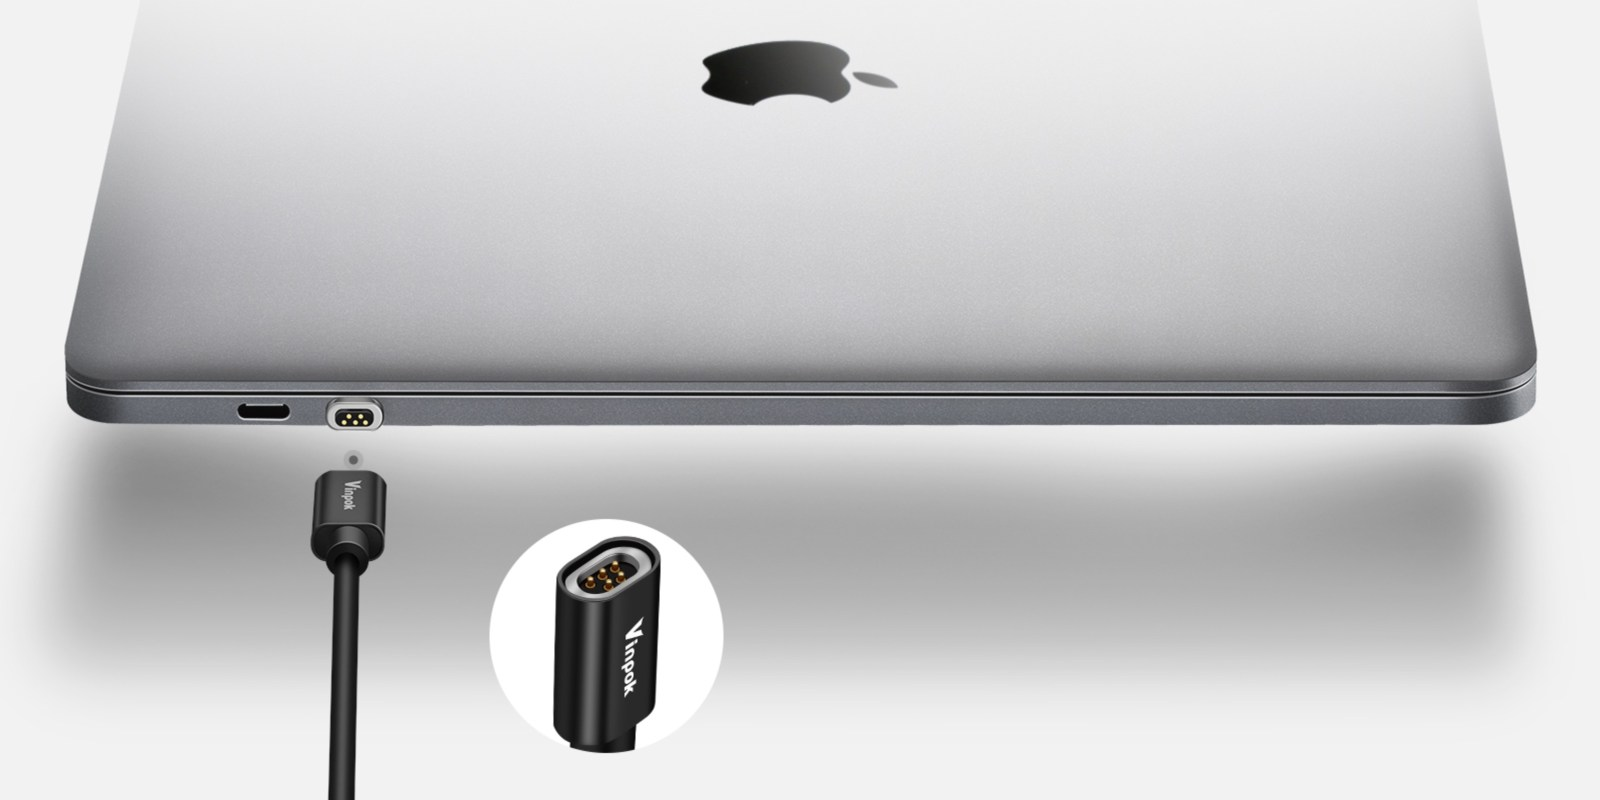 New Bolt USB-C cable brings MagSafe functionality to all MacBook models